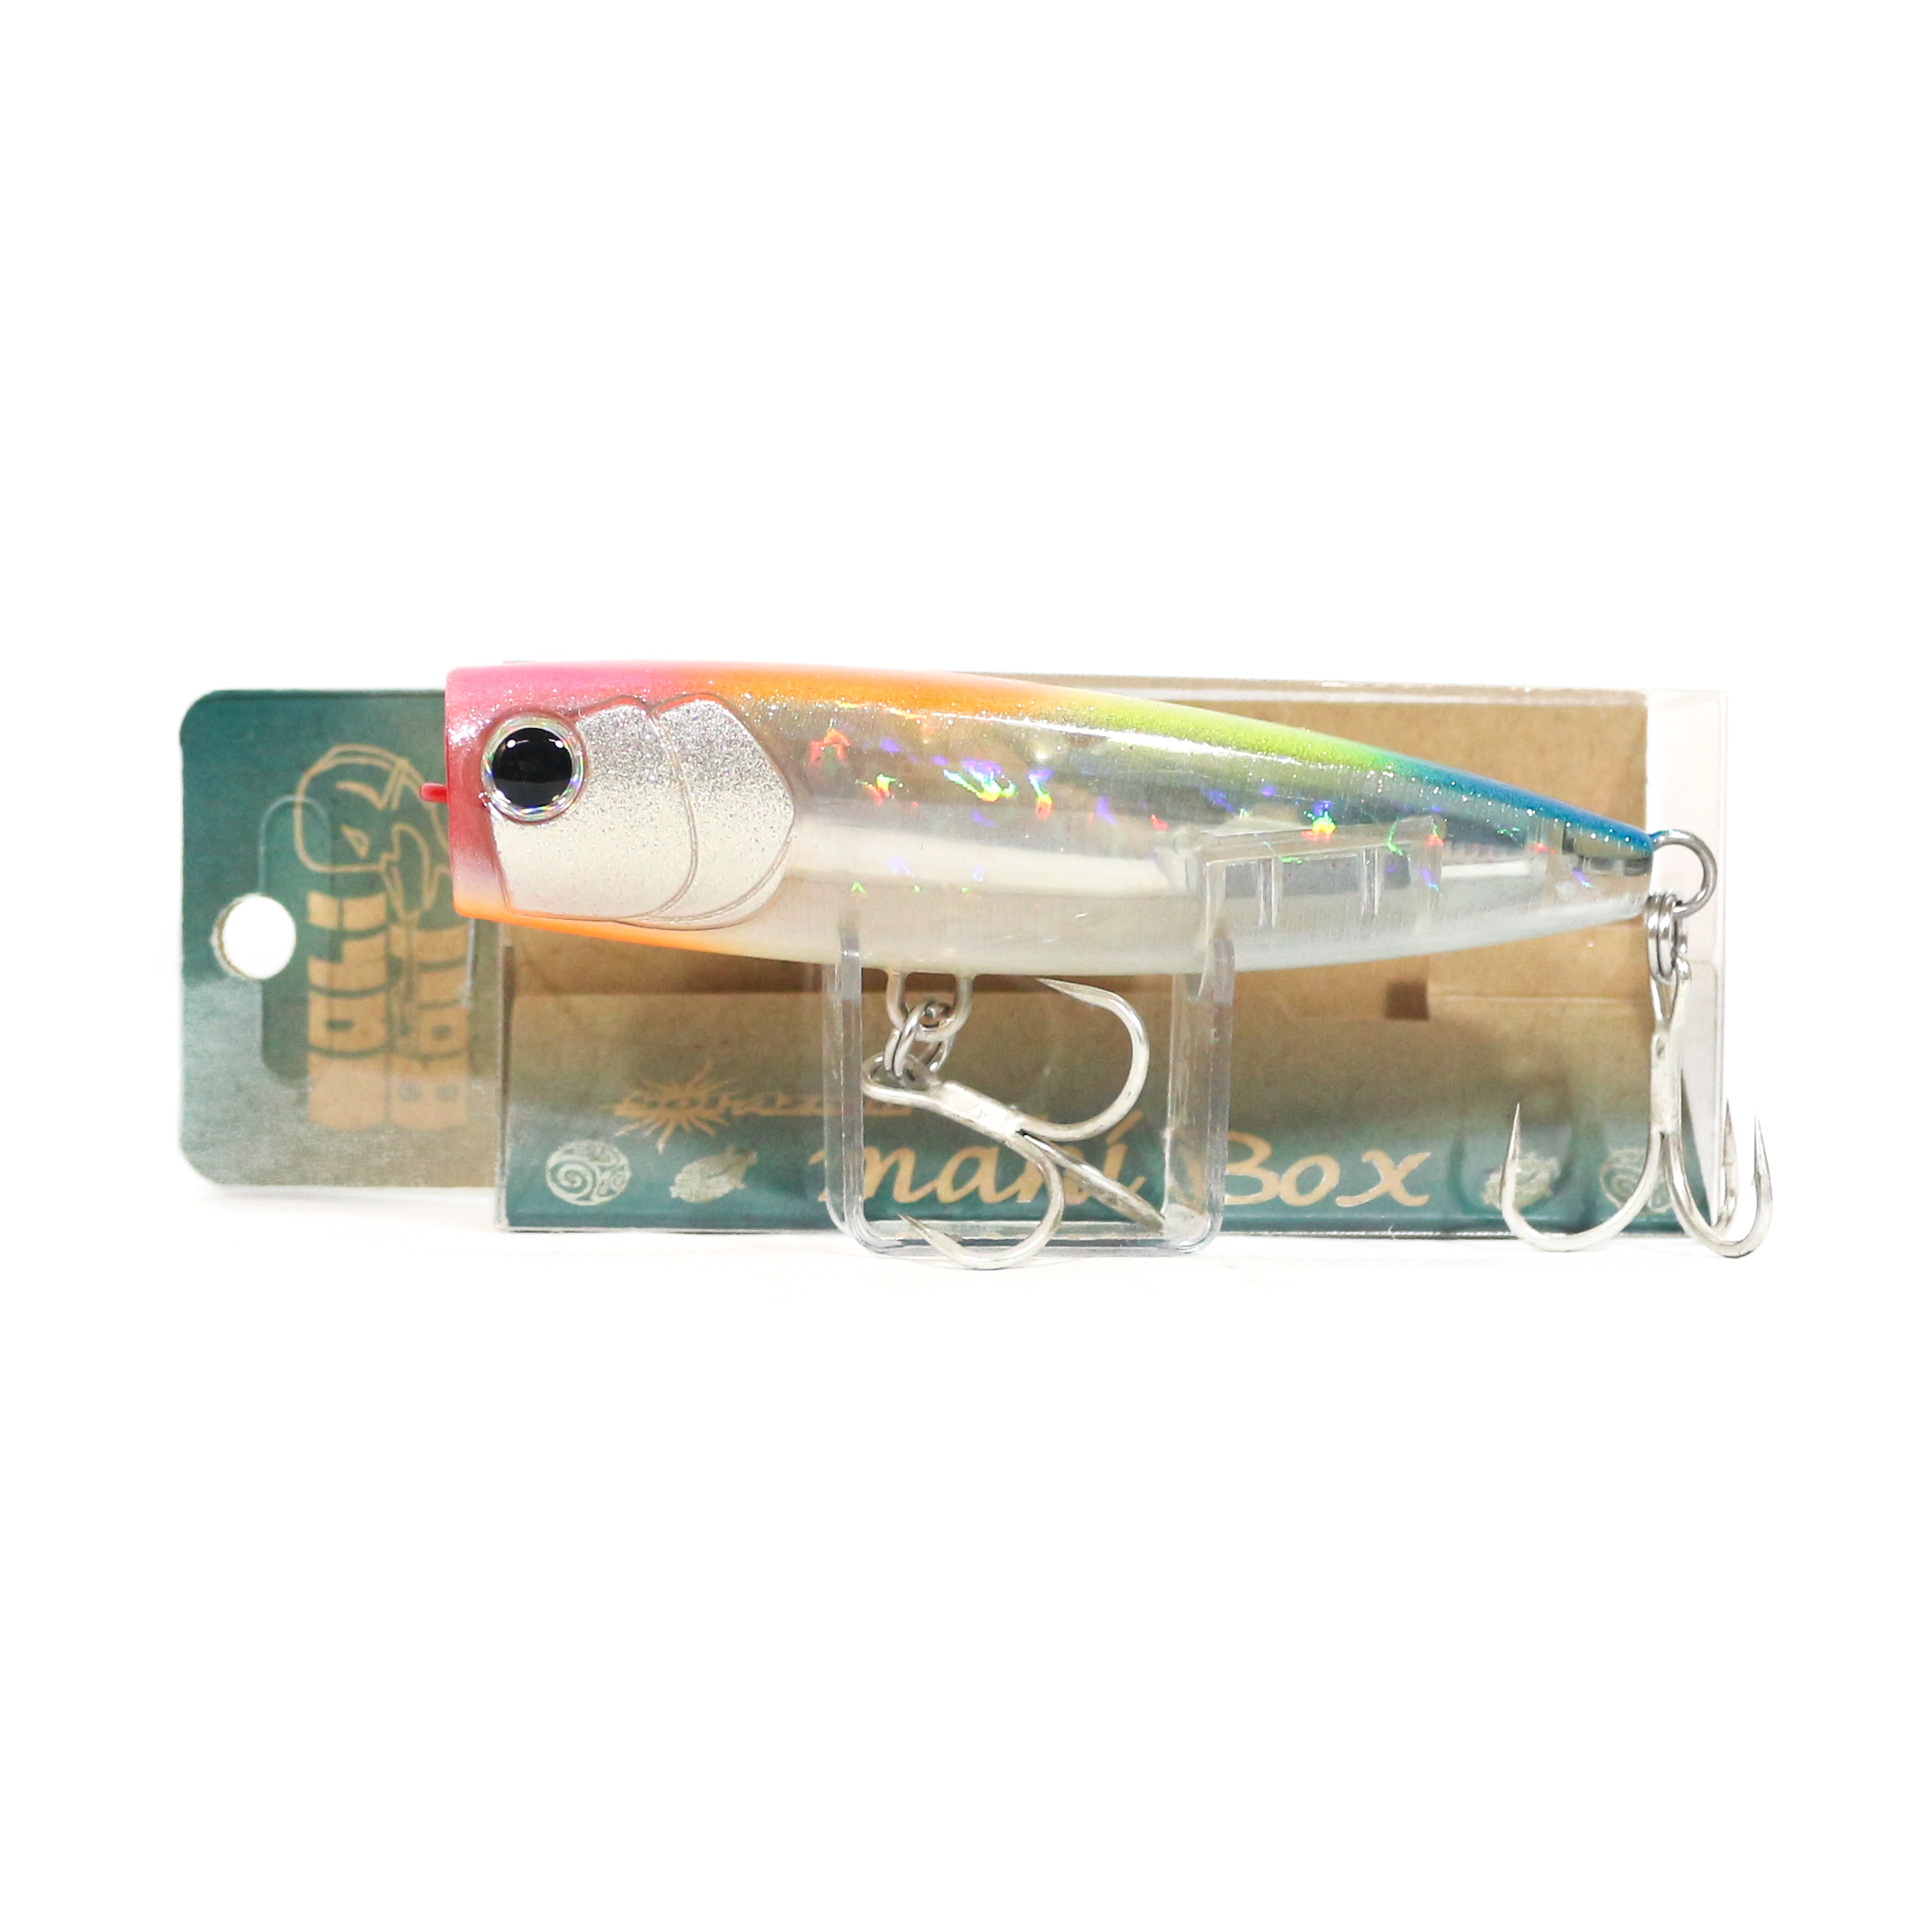 Mangrove Studio Mahi Box Popper 100 mm 28 grams Floating Lure IM-32G (1488)